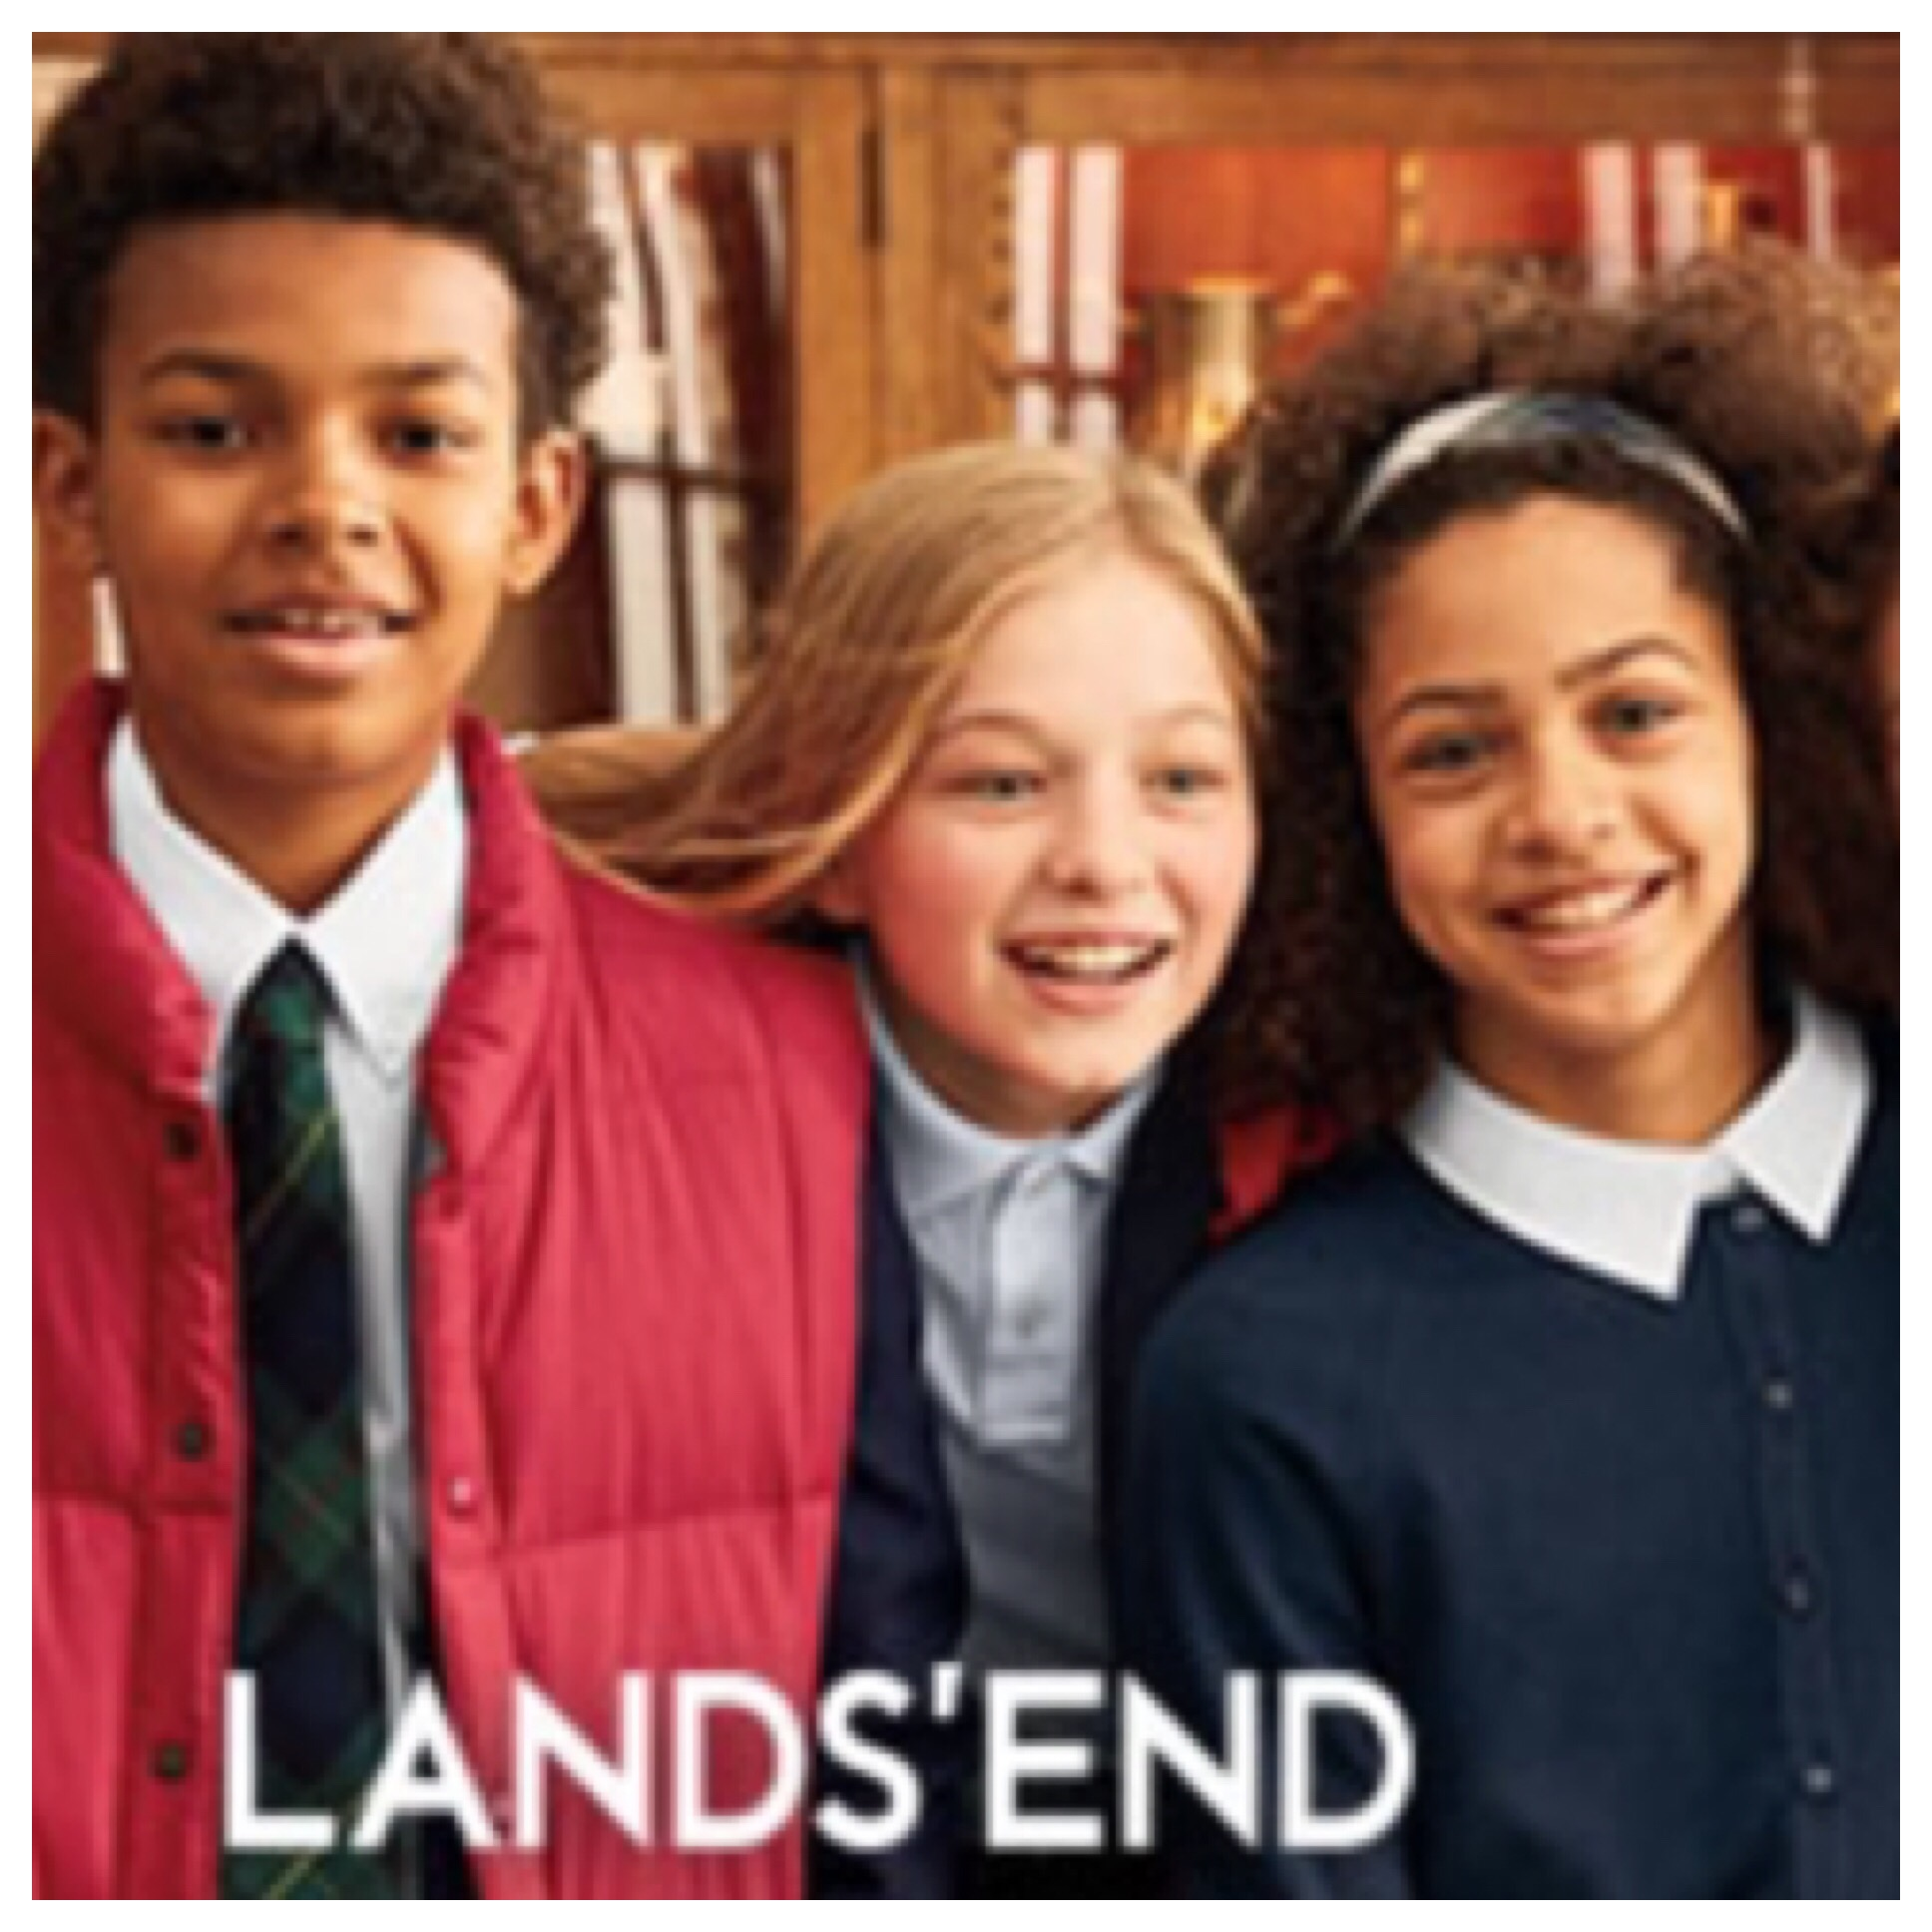 c38f41c9b Lands End is my go to for uniforms. My daughter's colors are navy blue and  white. I don't know how my daughter grew so fast but I'm glad Lands End has  her ...